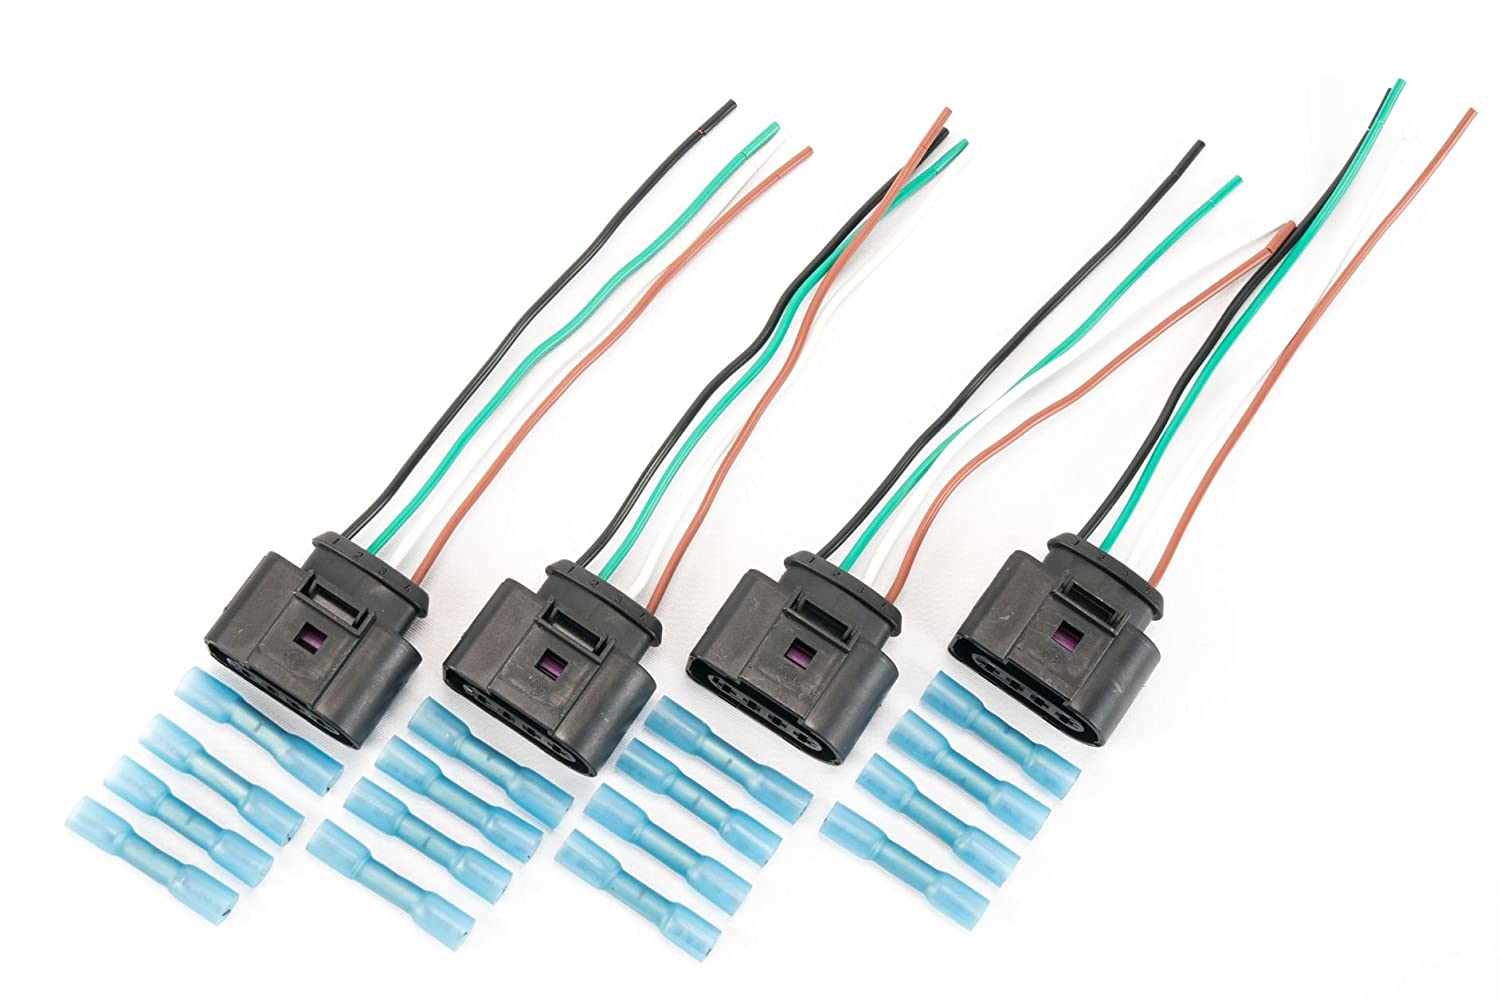 Ignition Coil Pack Replacement Connector Harness Set Of 4 Vw Wiring Connectors Fits Volkswagen Audi